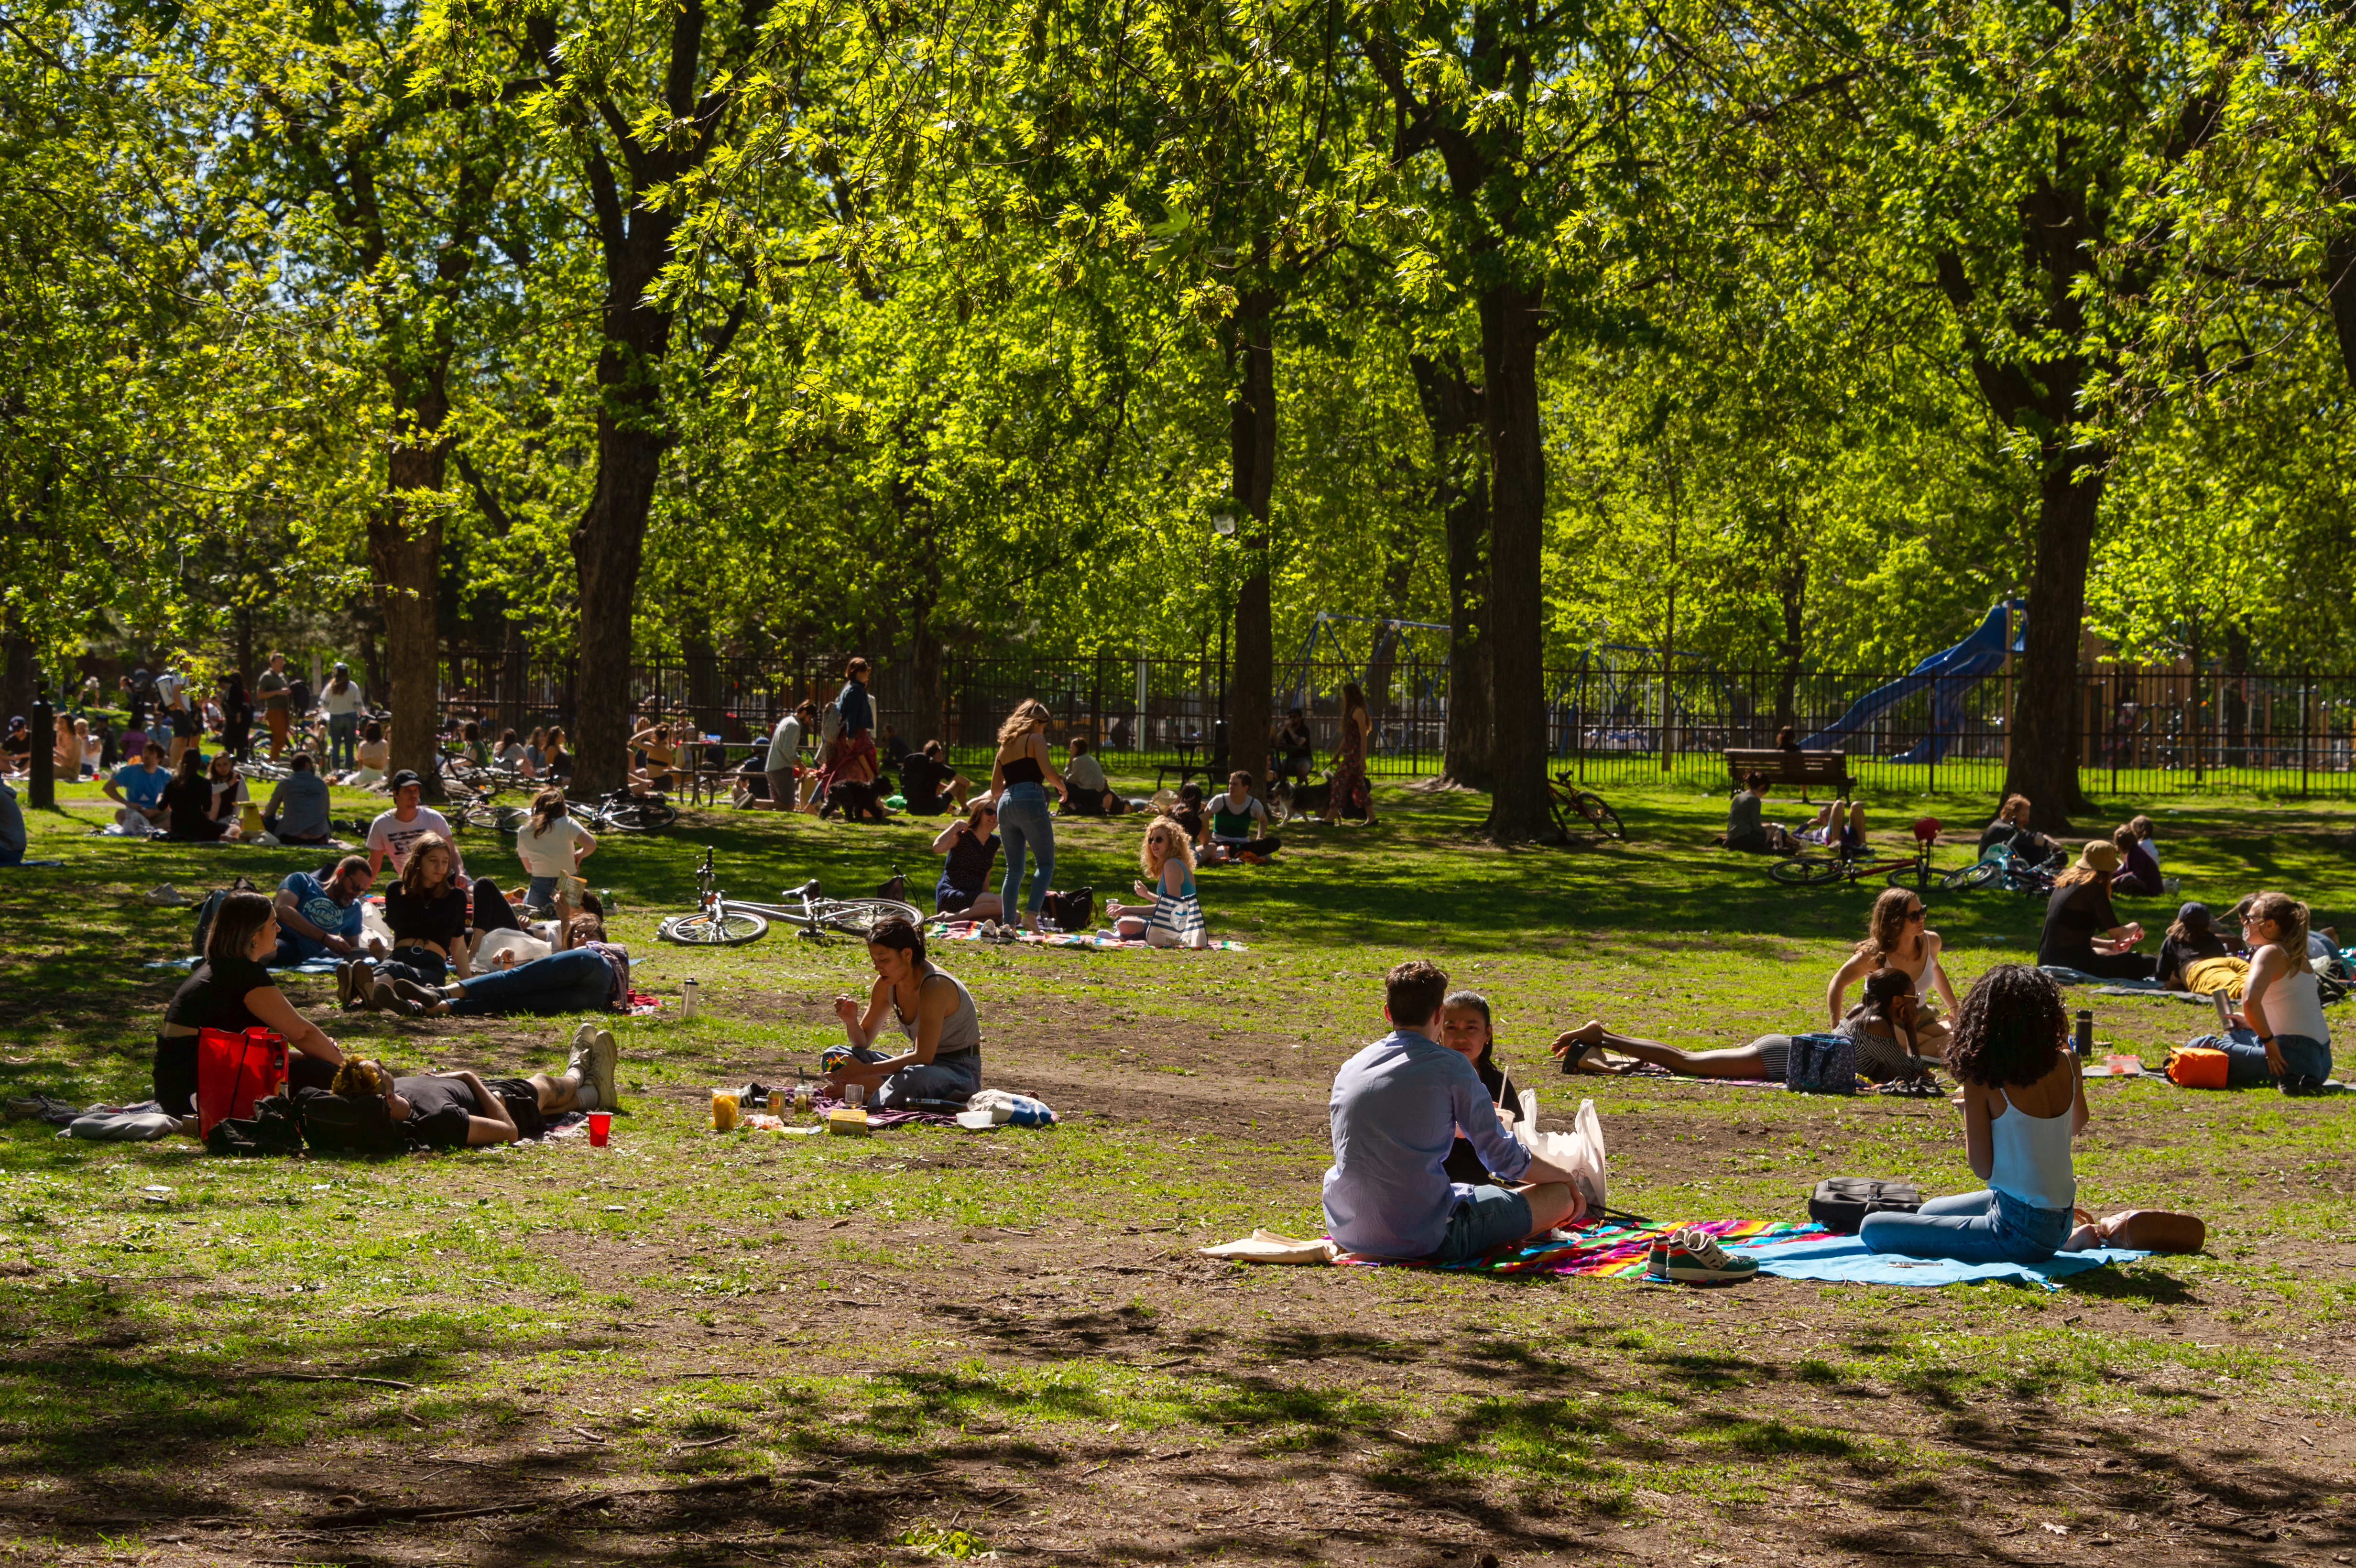 People picnicking in park